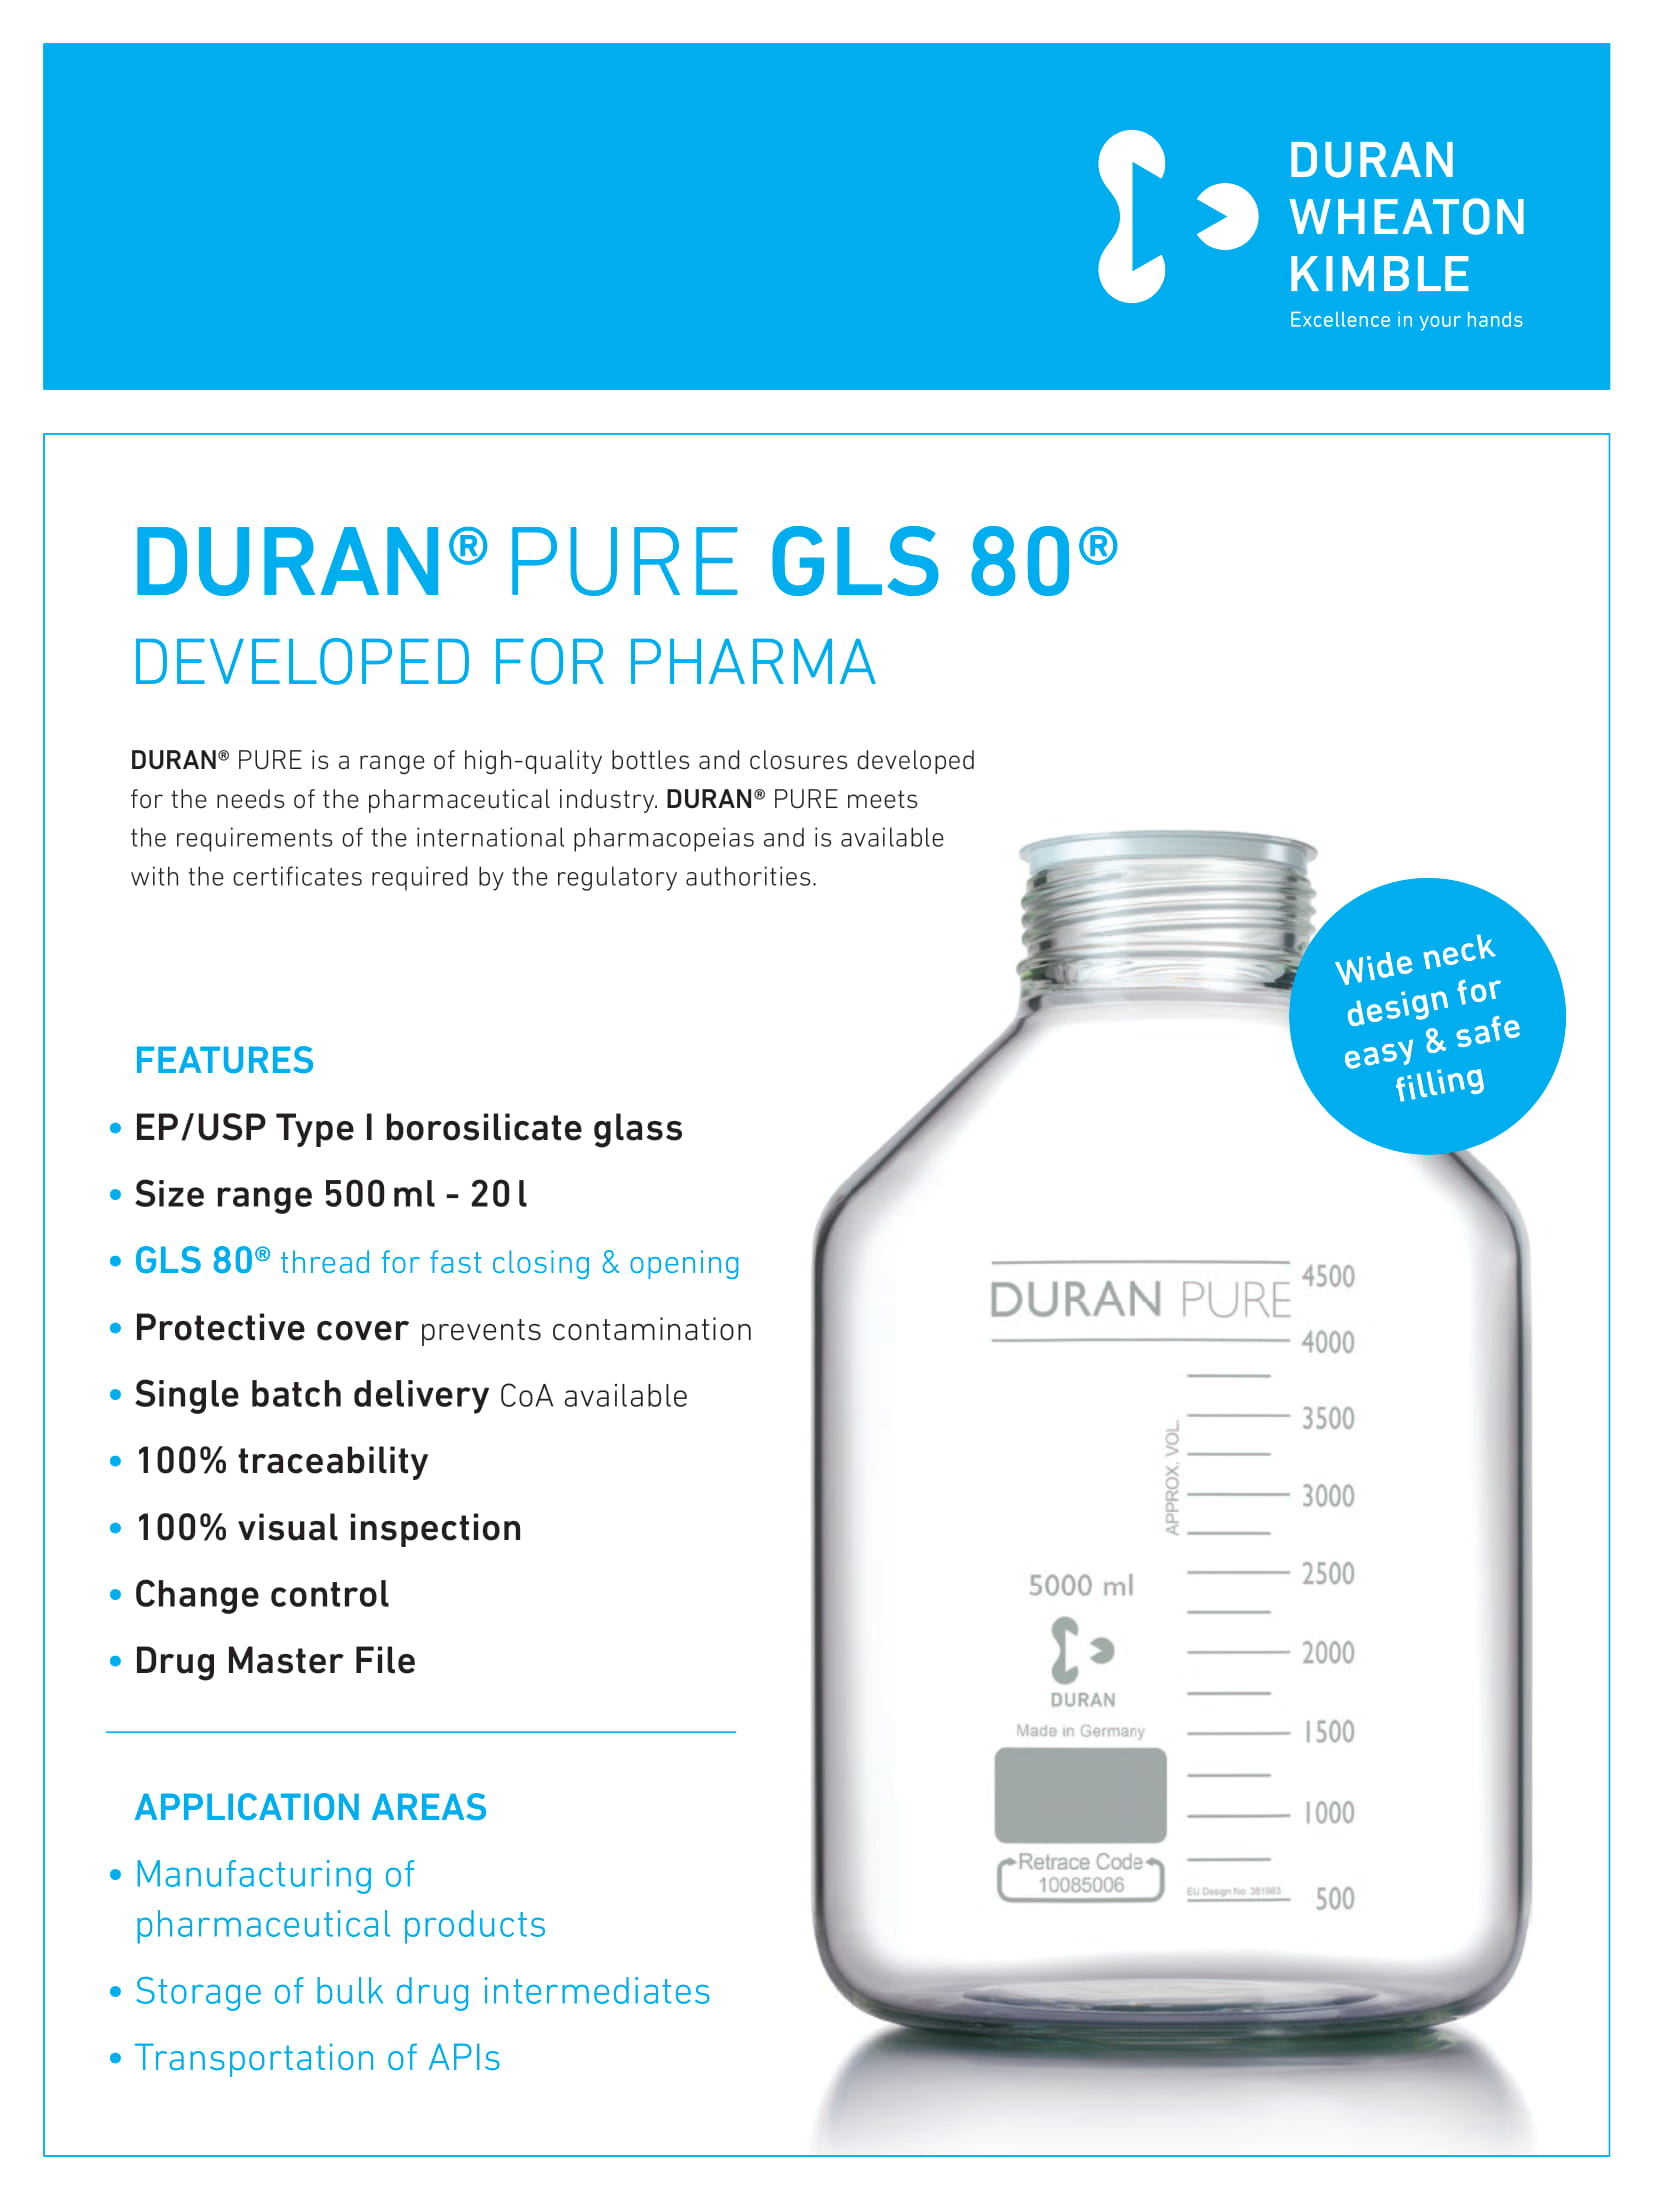 DURAN® PURE GLS 80® - Developed for Pharma